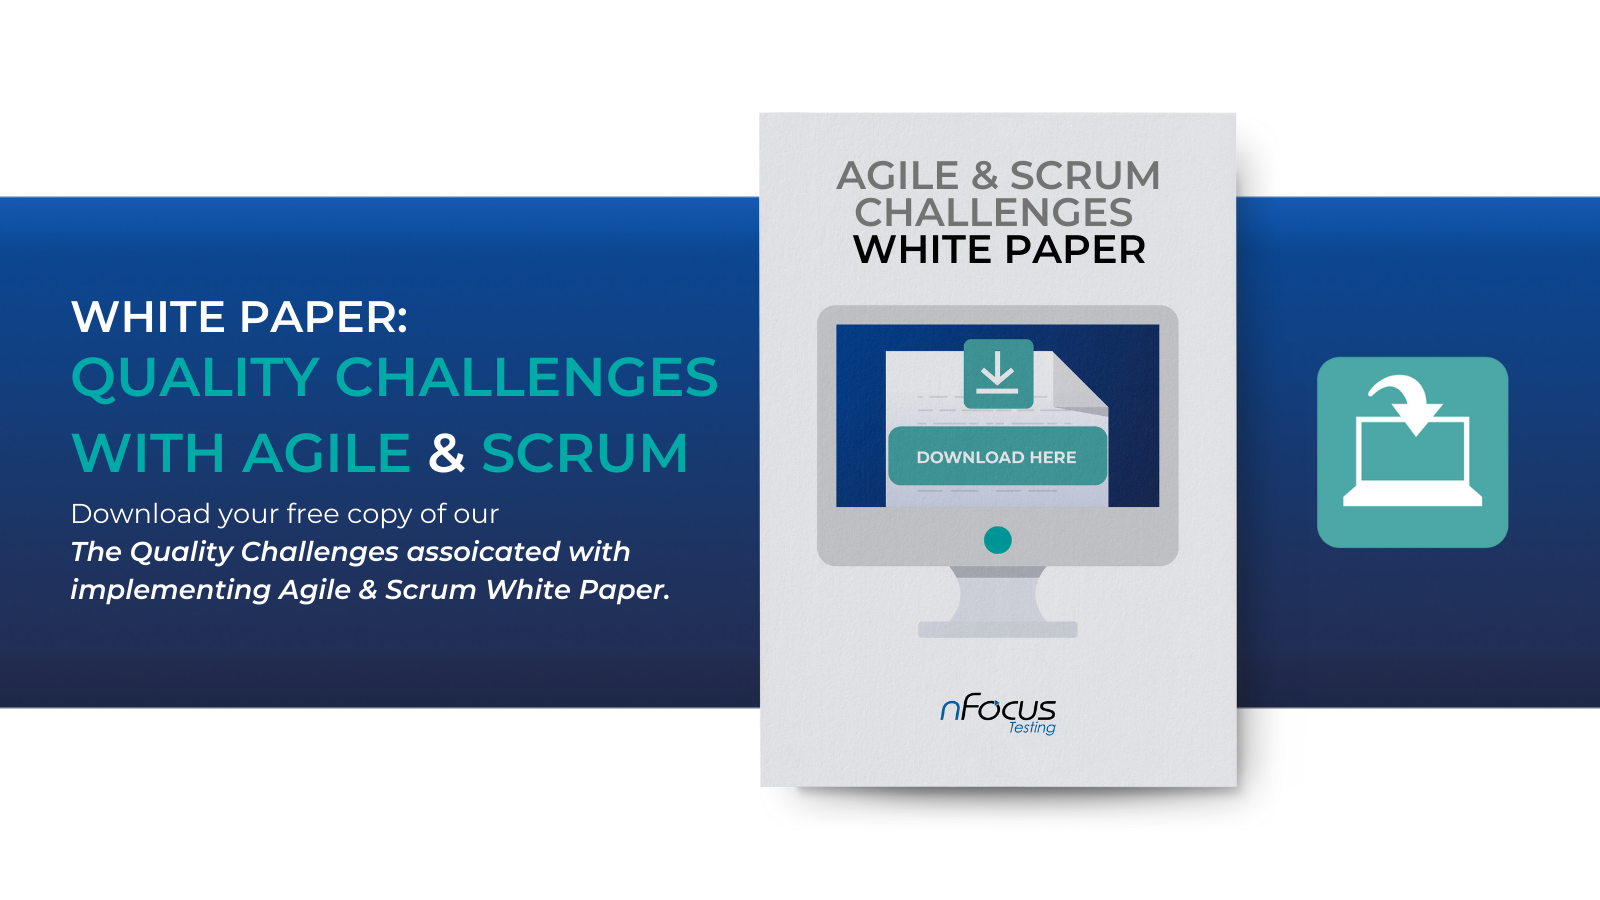 Quality Challenges with Agile & Scrum